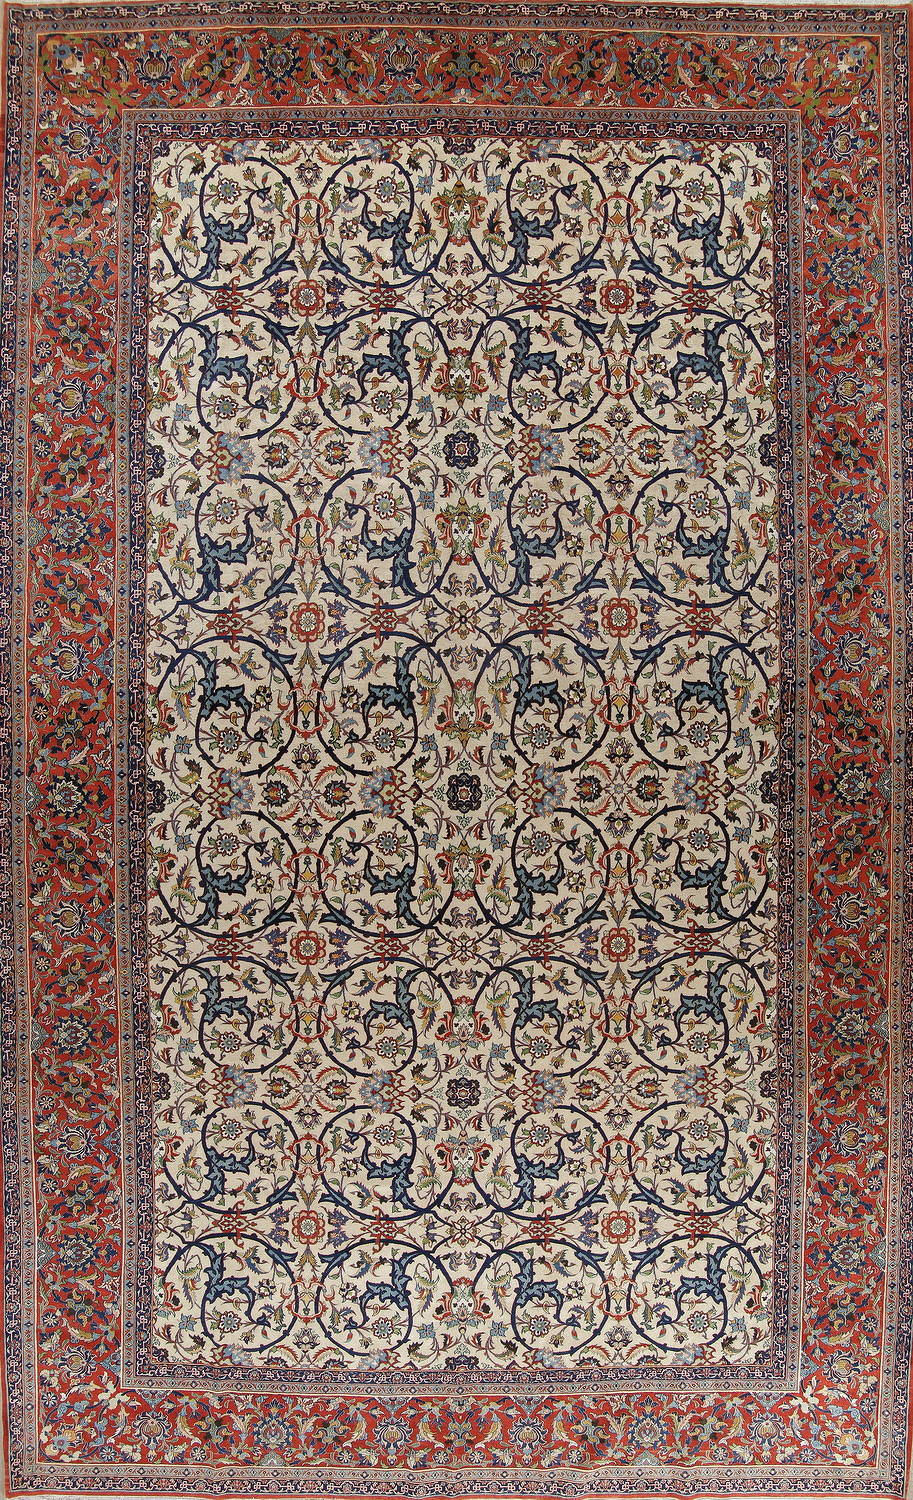 Pre 1900 Antique Ivory Floral Isfahan Persian Area Rug 12x19